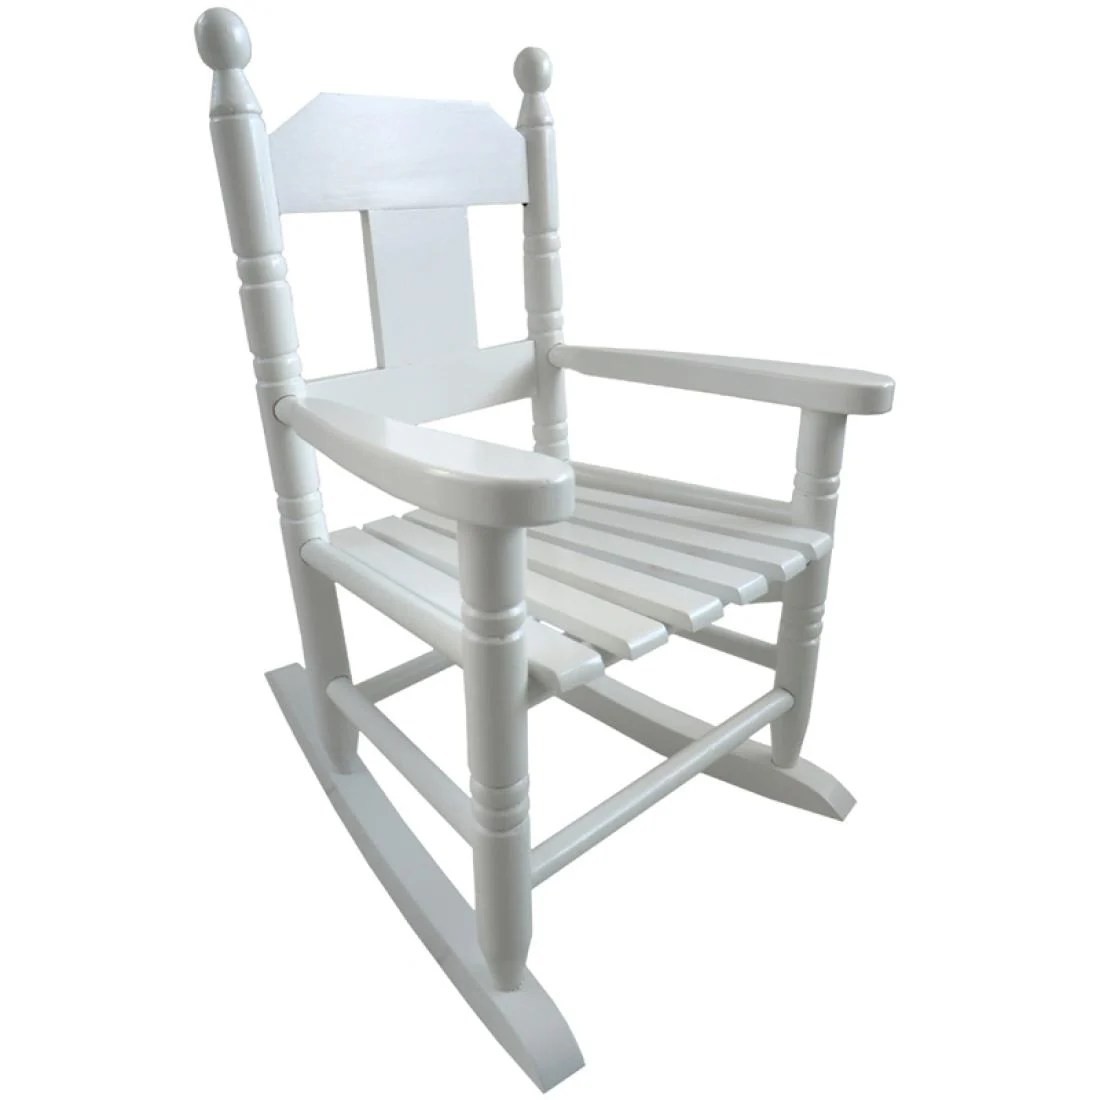 Kids Rocking Chairs White Childs Rocking Chair Childrens Rocking Chair Kids Chairs